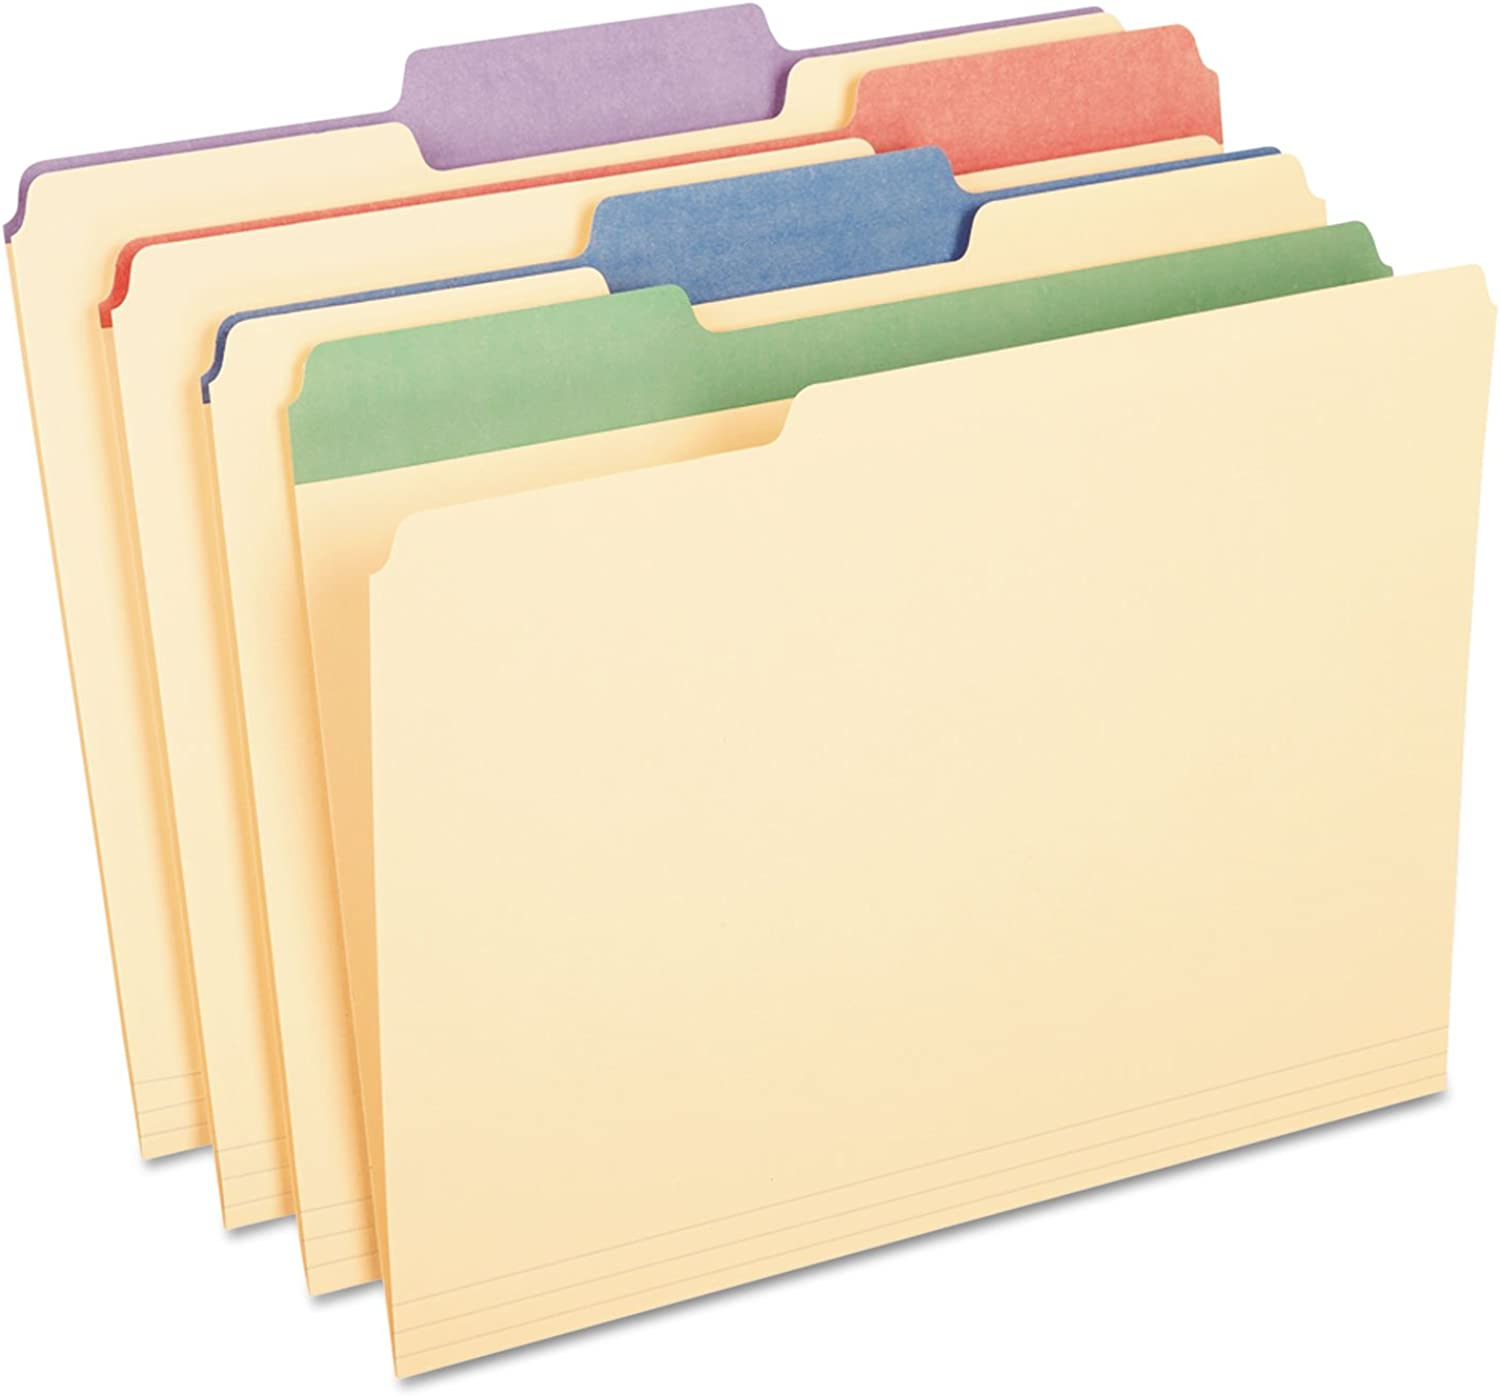 Pendaflex 1 3 Cut 3 4-Inch Letter Manila File File File Folders with Assorted Farbe Tabs, (PFX84100) by Pendaflex B00GPRPXYA   Outlet Store  ae0028